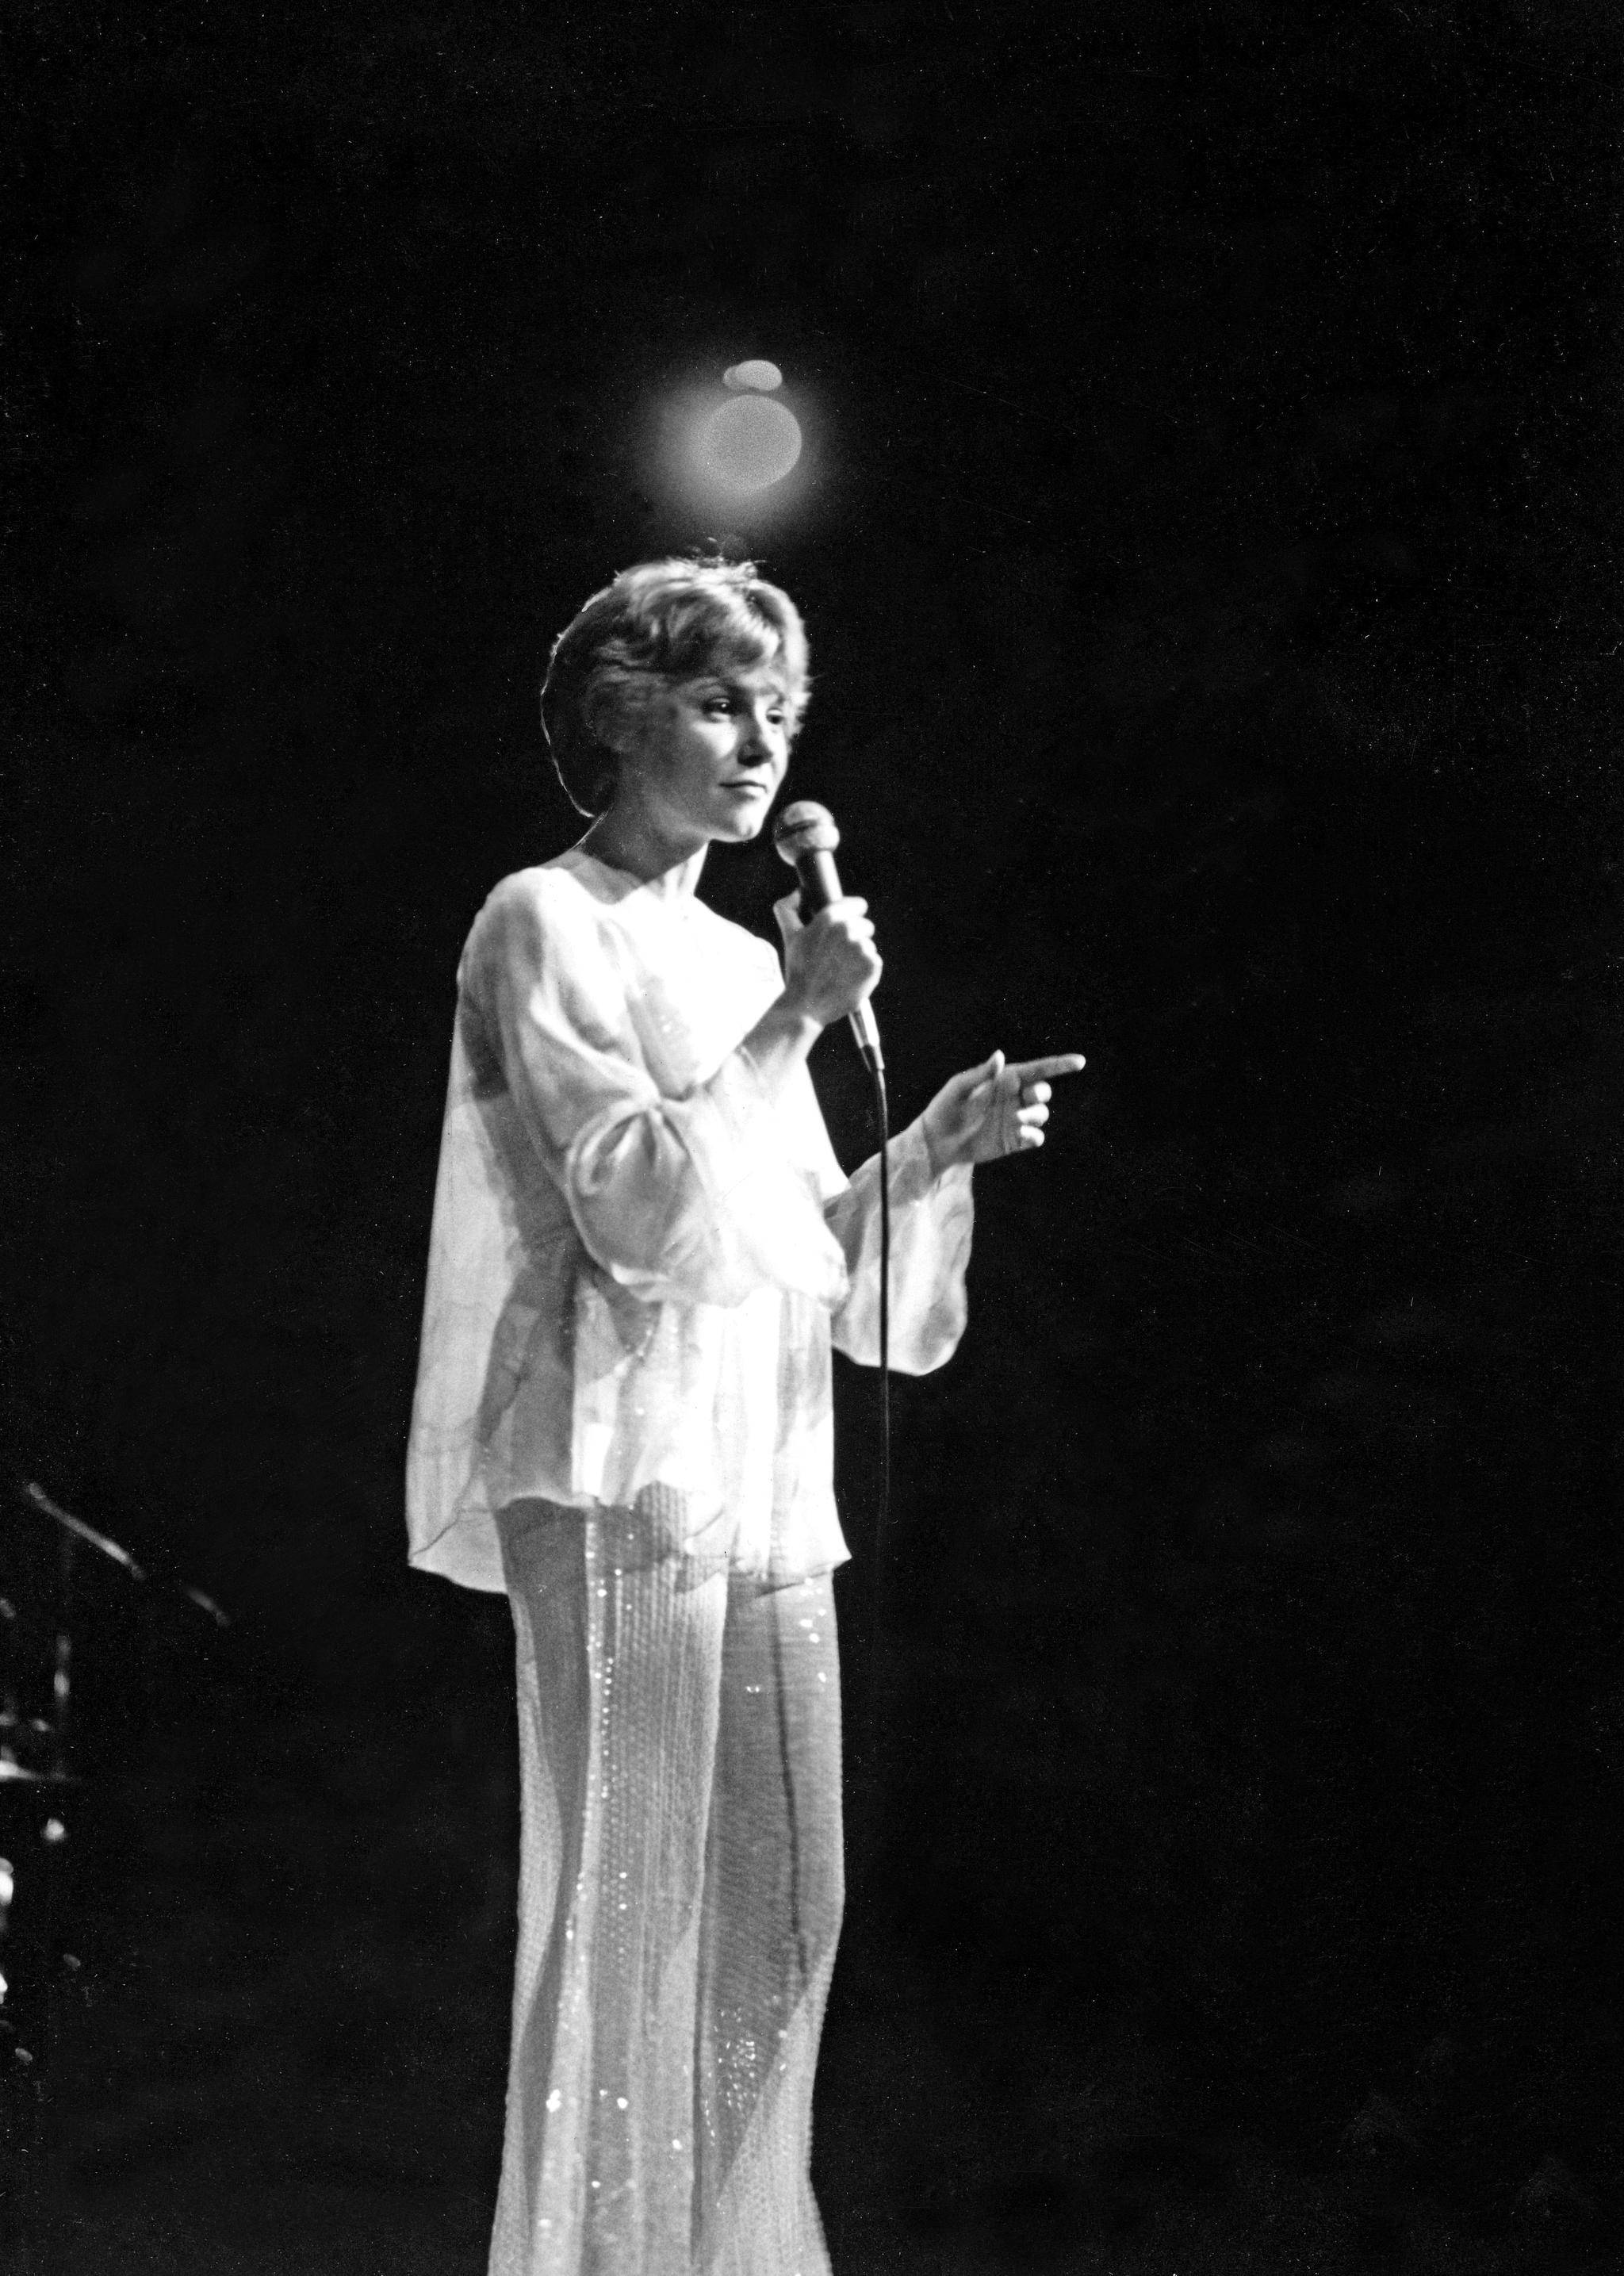 Anne Murray wants you to know she's doing just fine - The